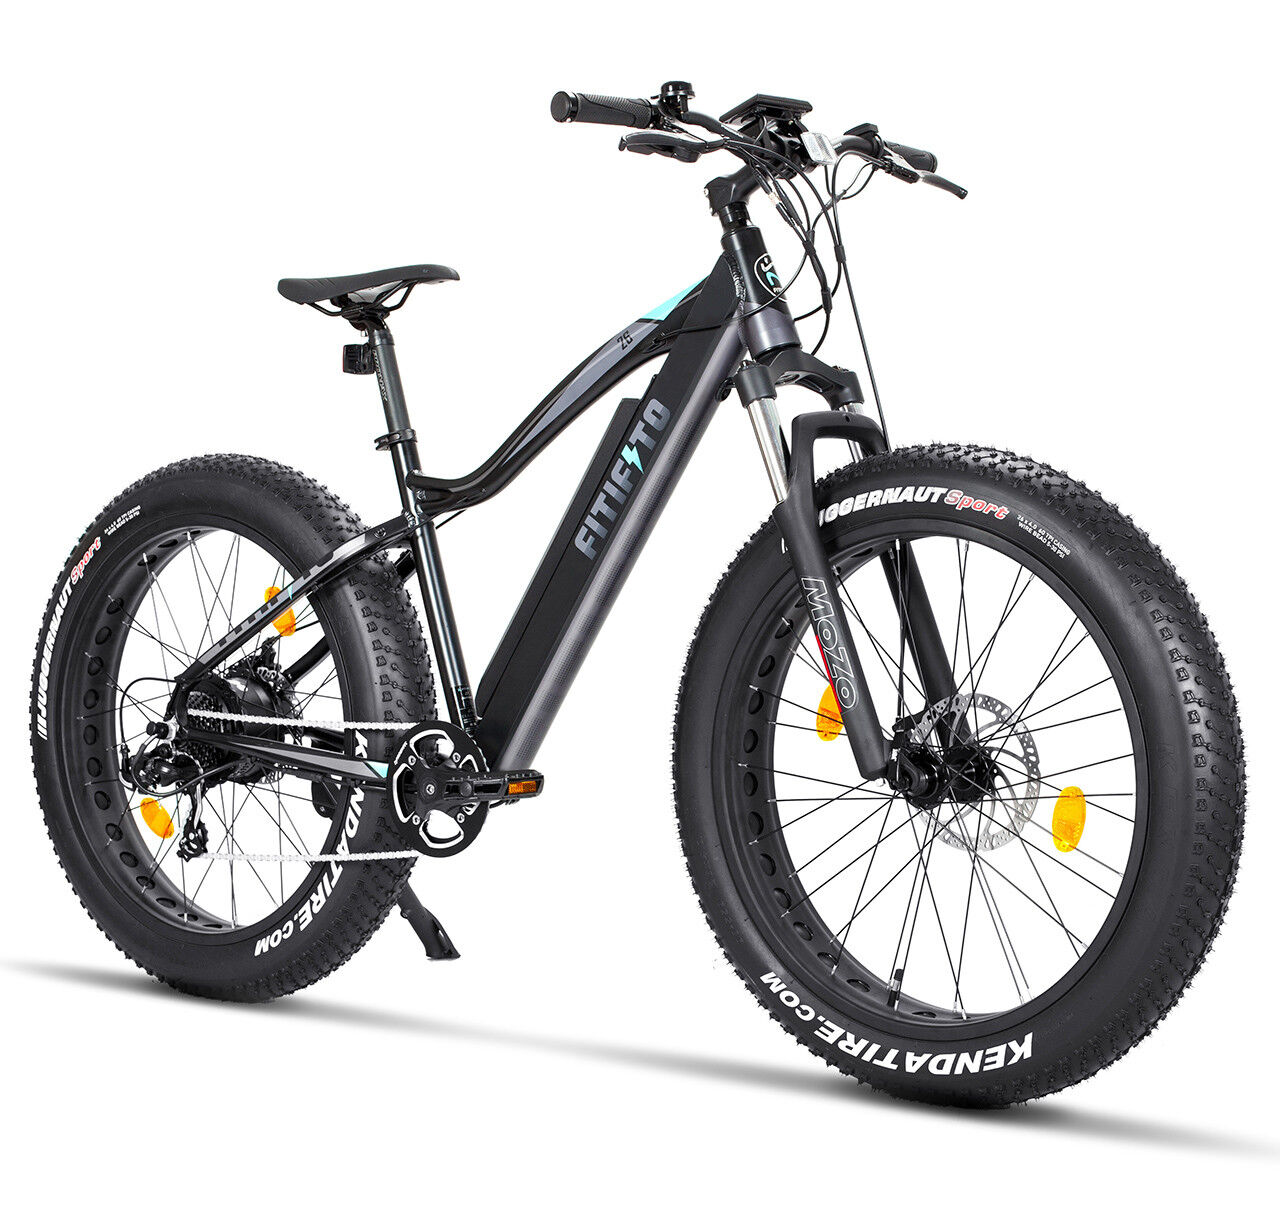 fitifito ft26 elektrofahrrad fatbike e bike pedelec. Black Bedroom Furniture Sets. Home Design Ideas